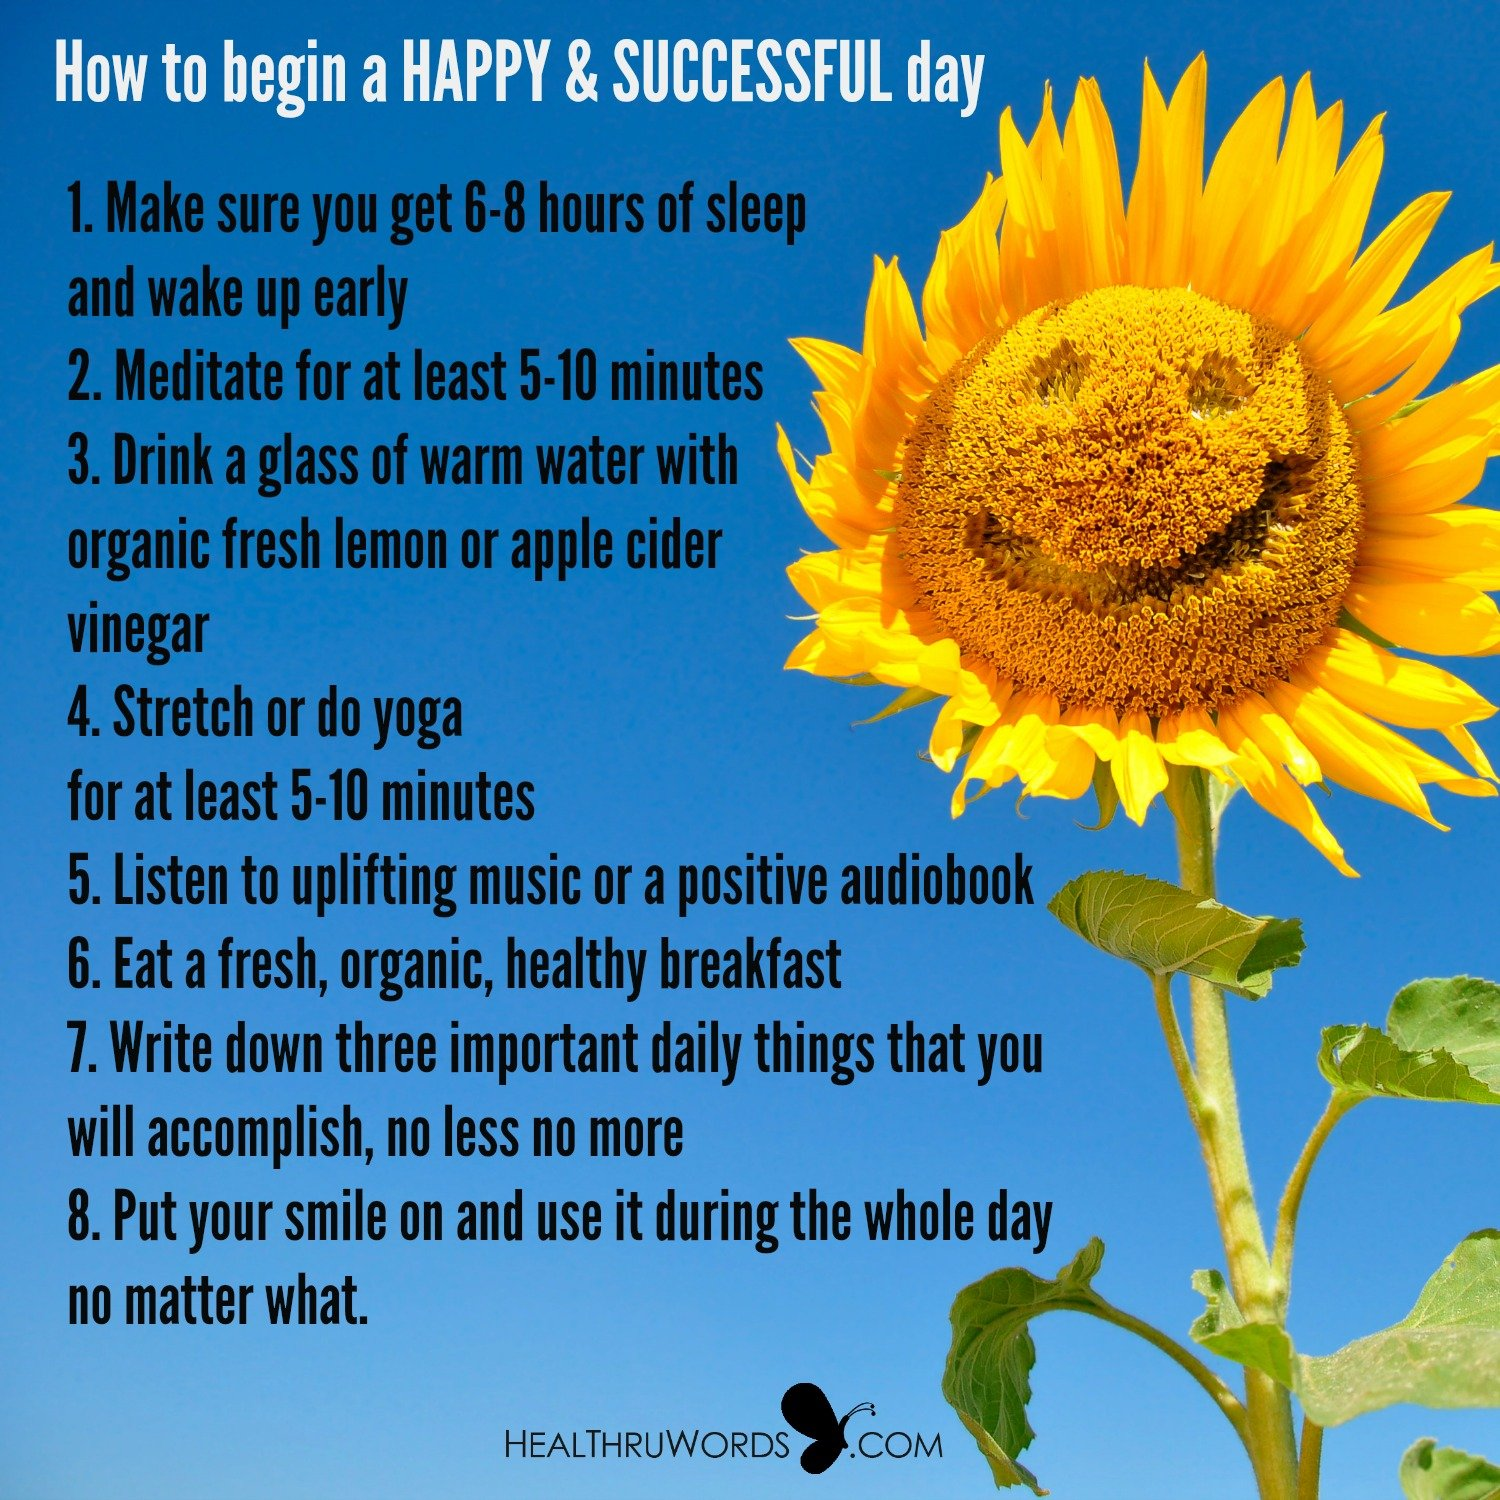 Inspirational Image: How to begin a happy and successful day